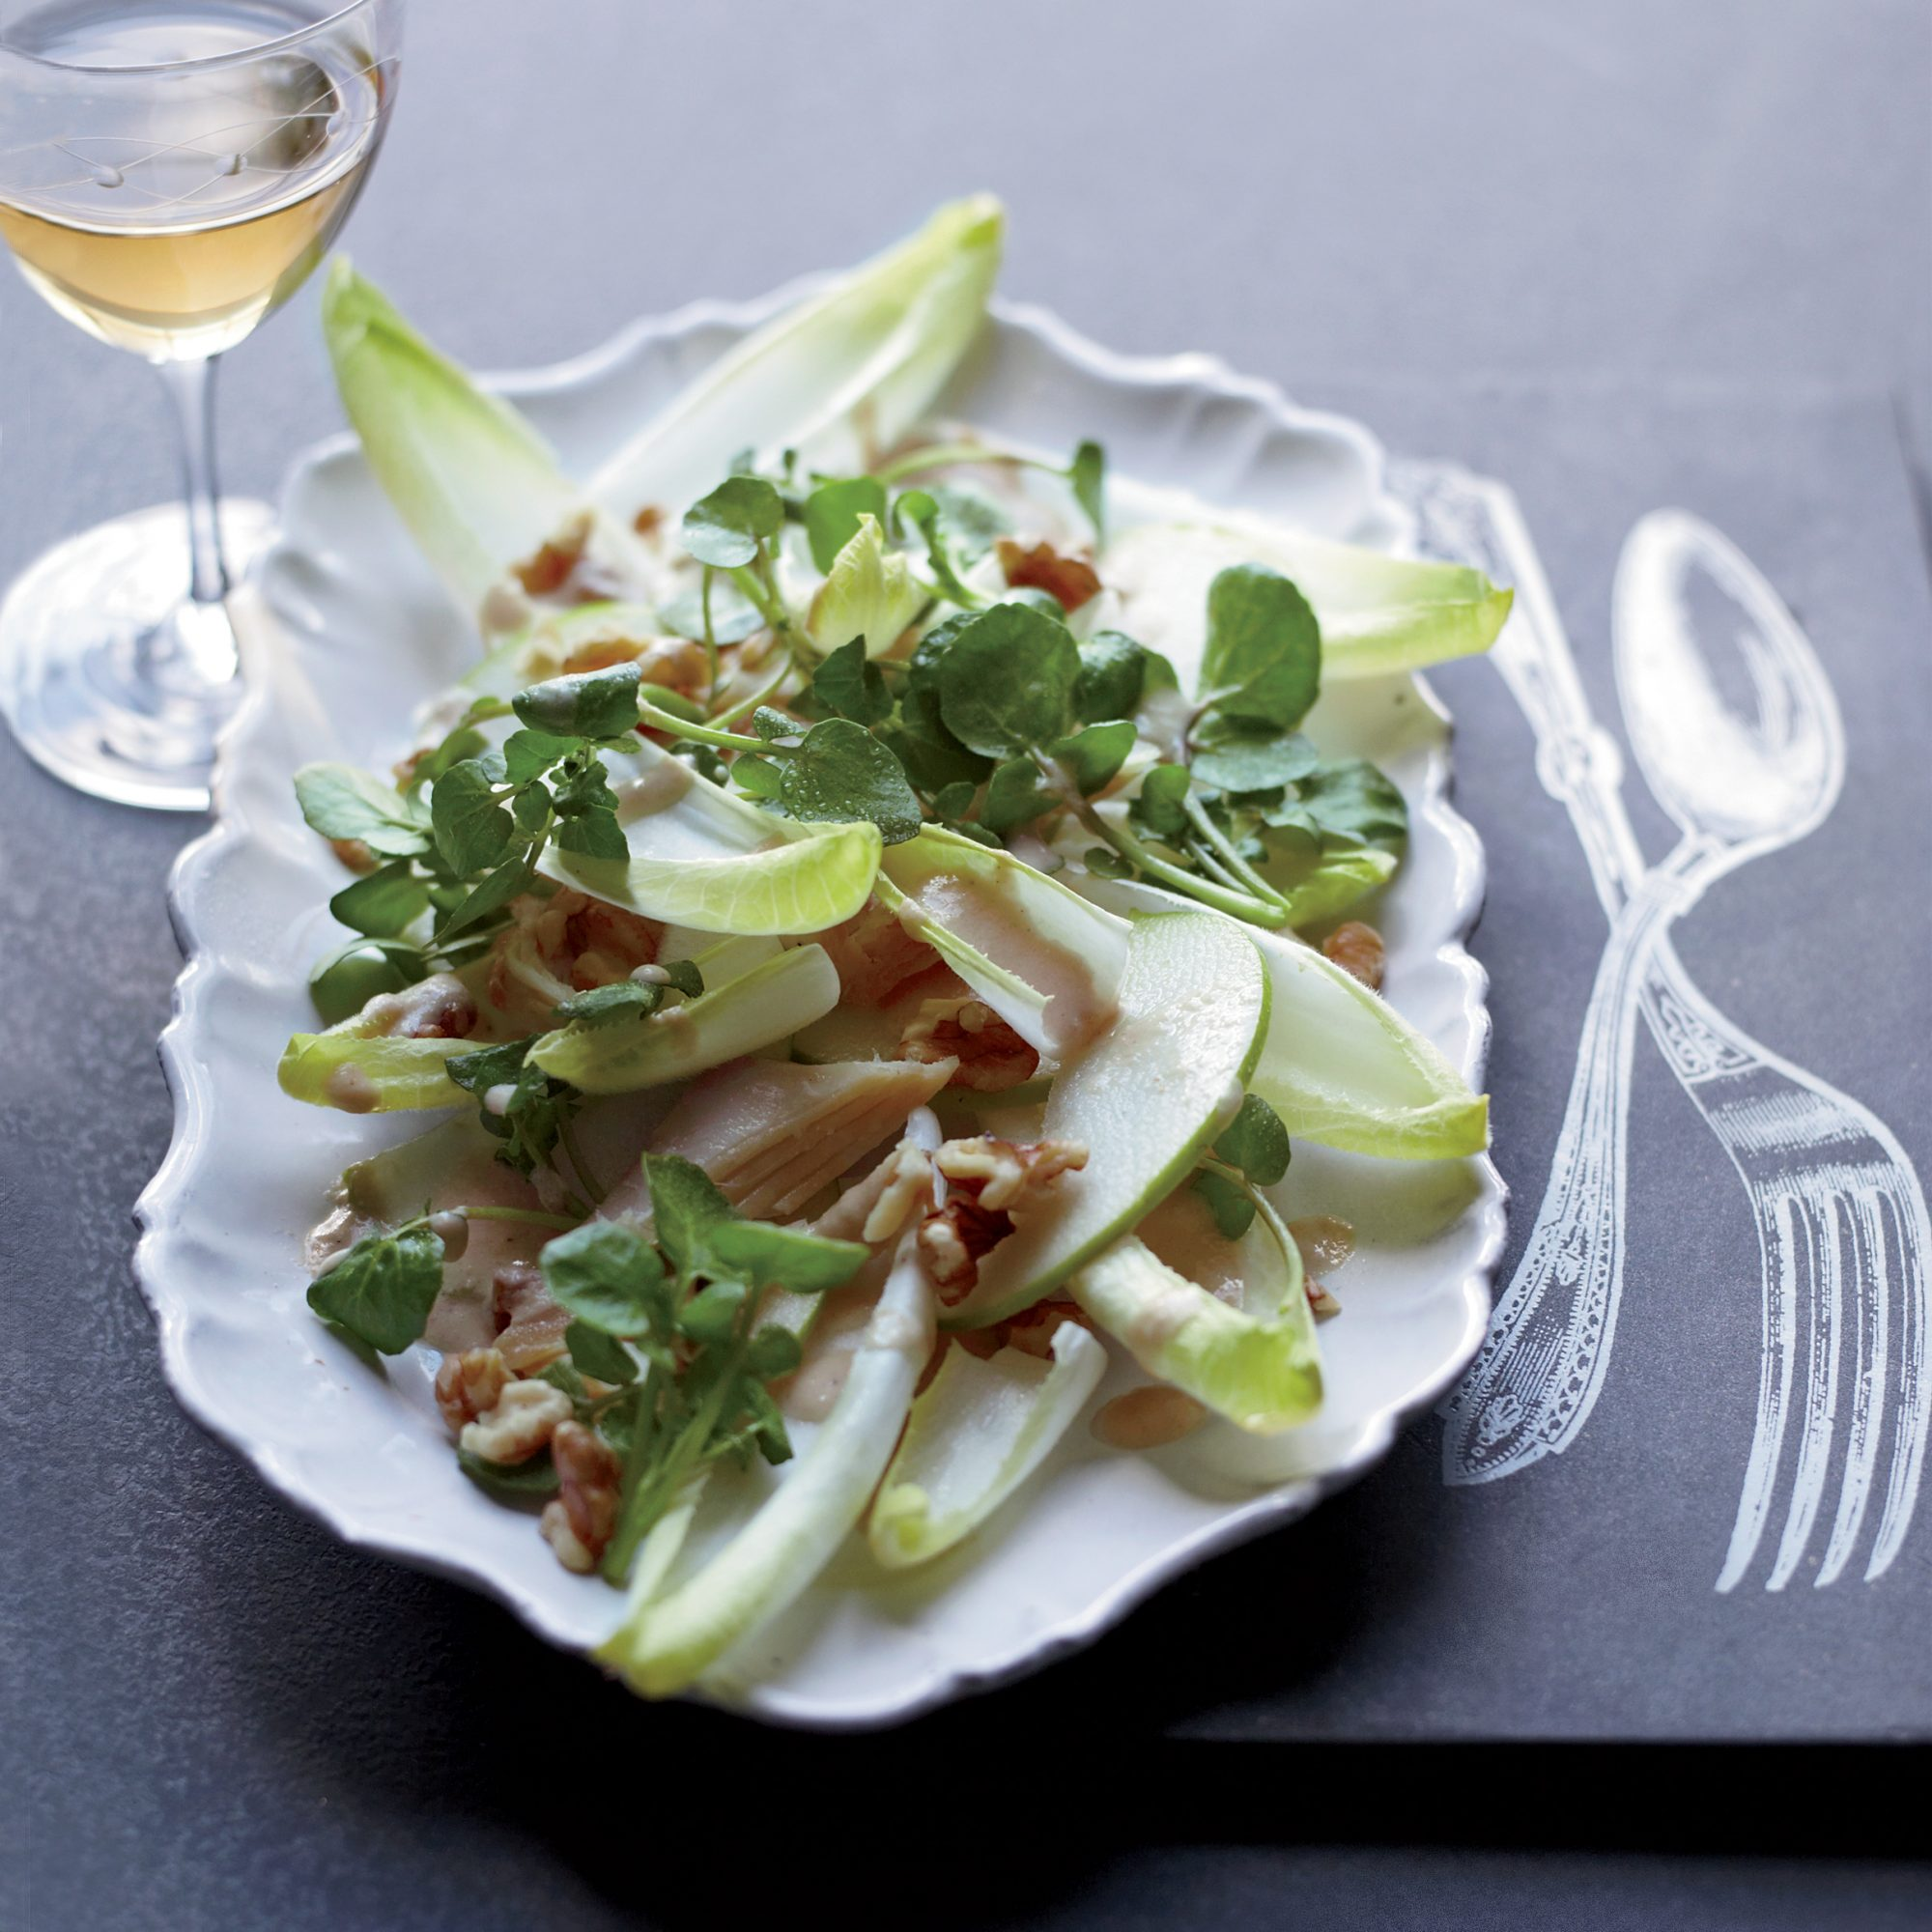 201102-r-smoked-trout-salad.jpg